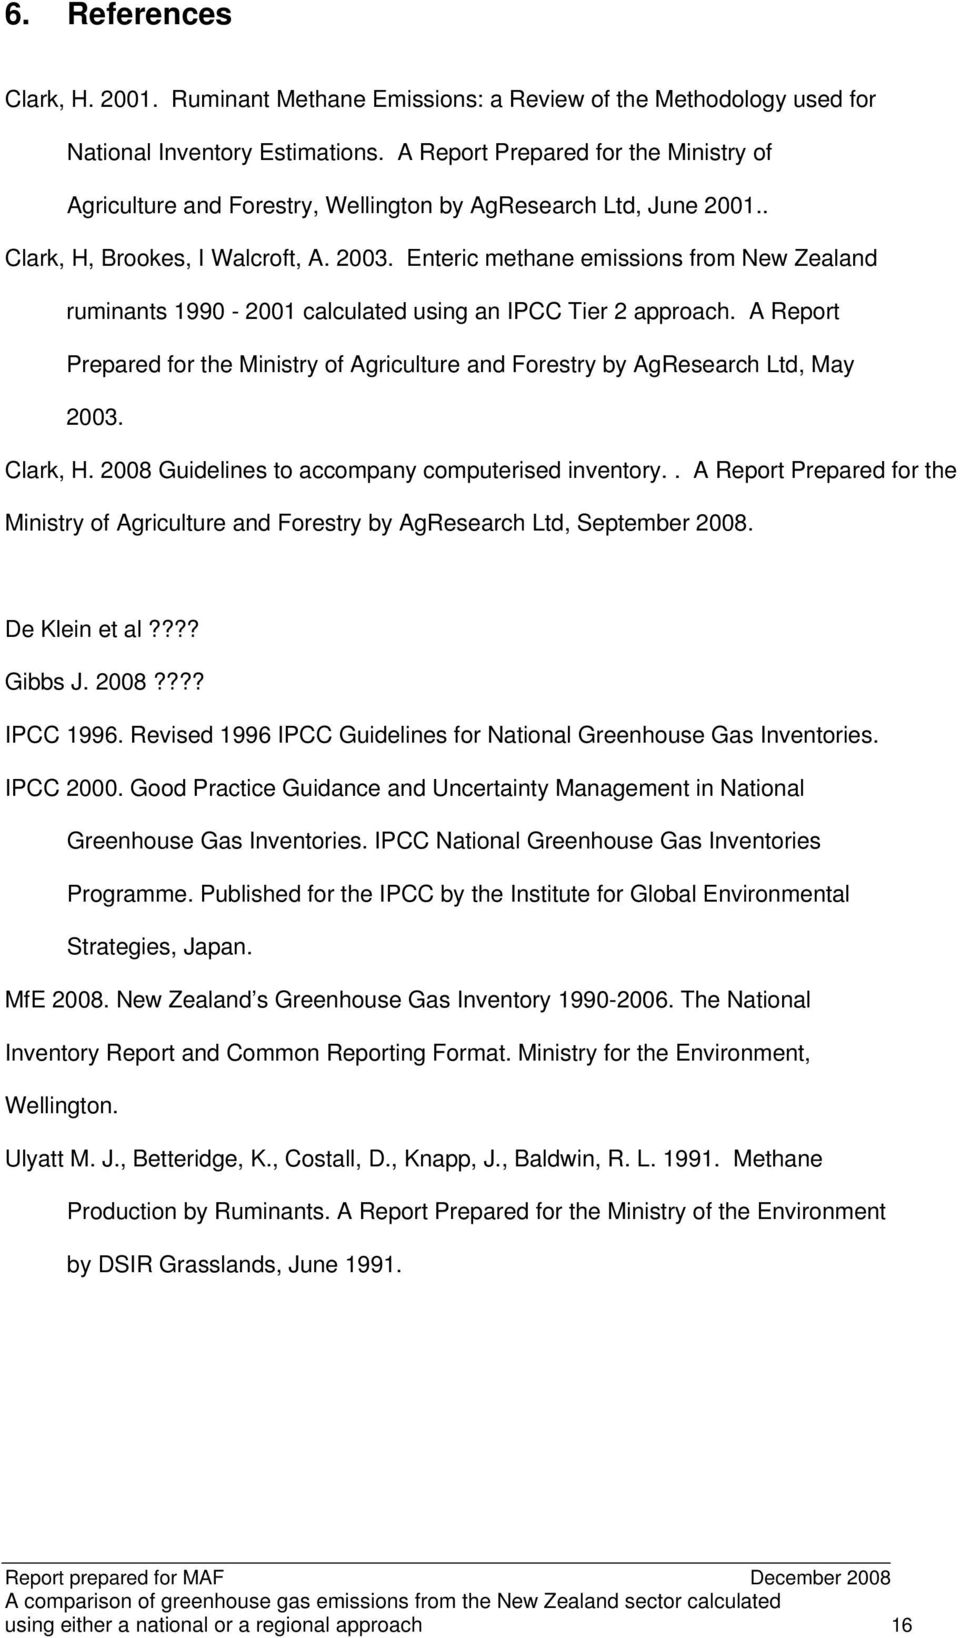 Enteric methane emissions from New Zealand ruminants 1990-2001 calculated using an IPCC Tier 2 approach. A Report Prepared for the Ministry of Agriculture and Forestry by AgResearch Ltd, May 2003.